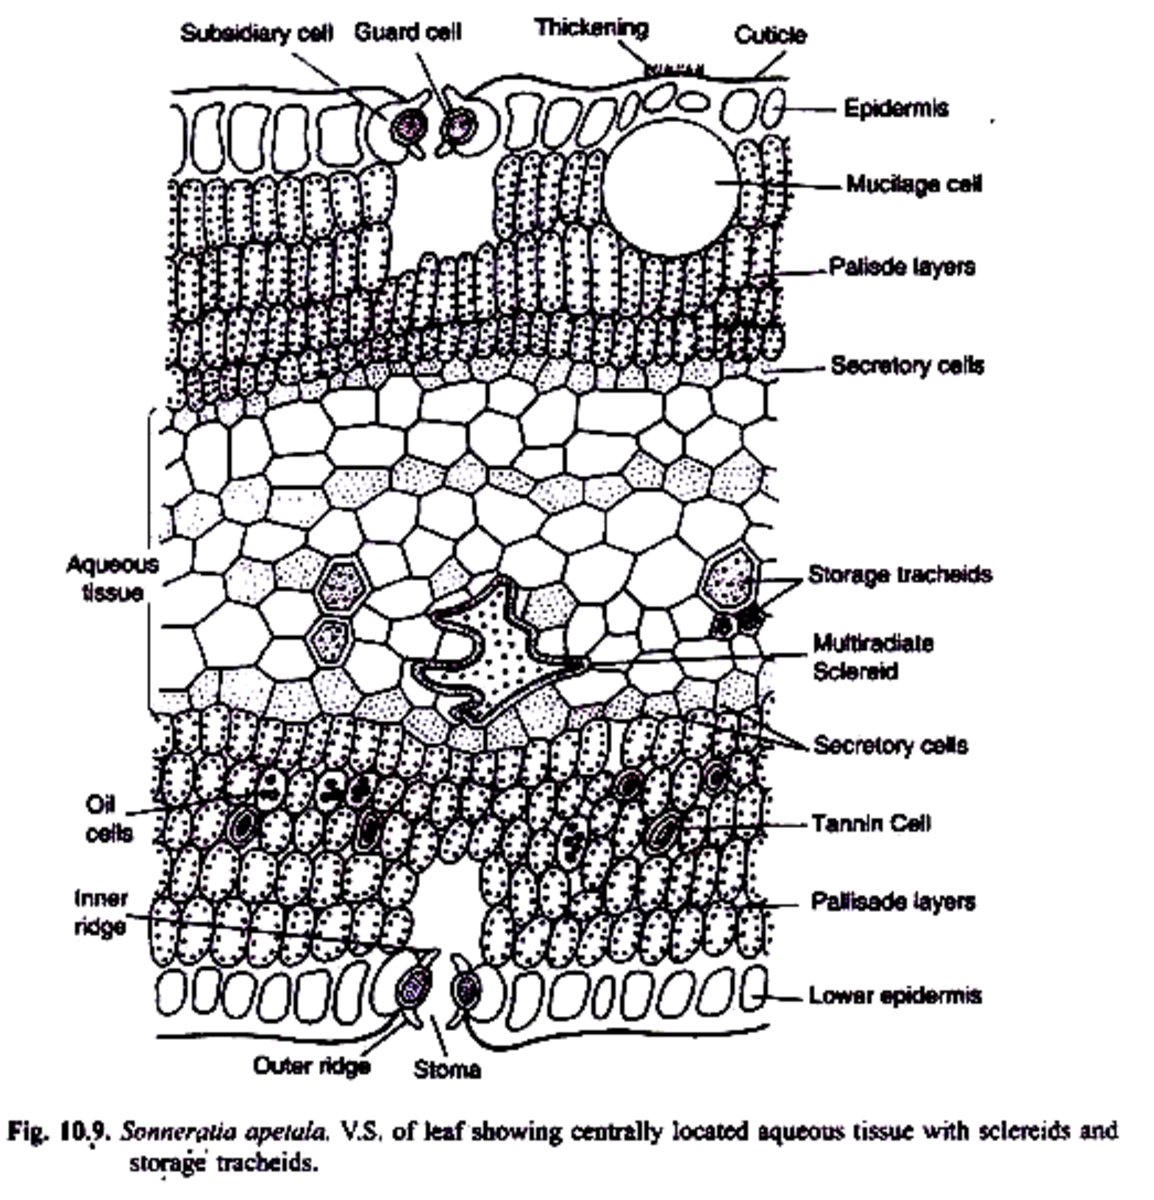 Extra palisade layer in the Mesophyll tissue